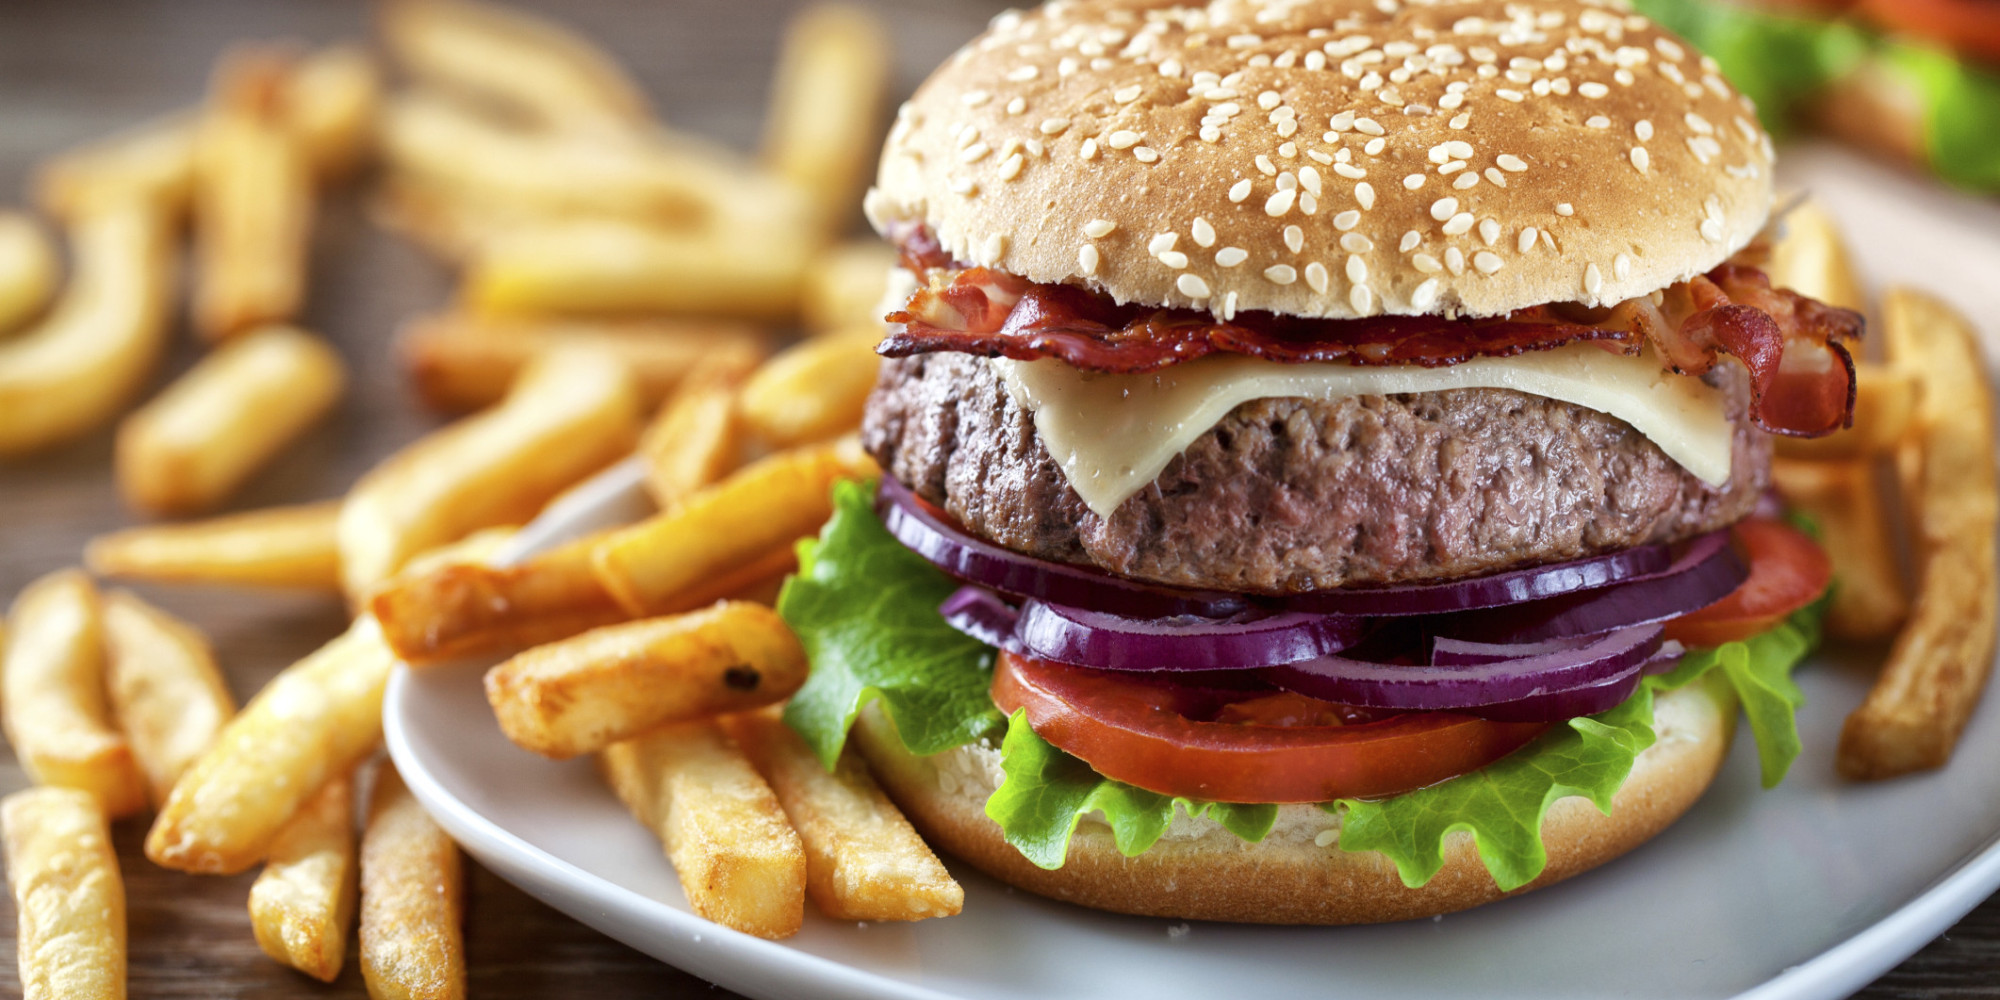 Why Eating A Burger And Fries After A Stressful Day Can Be A Bad Thing ...